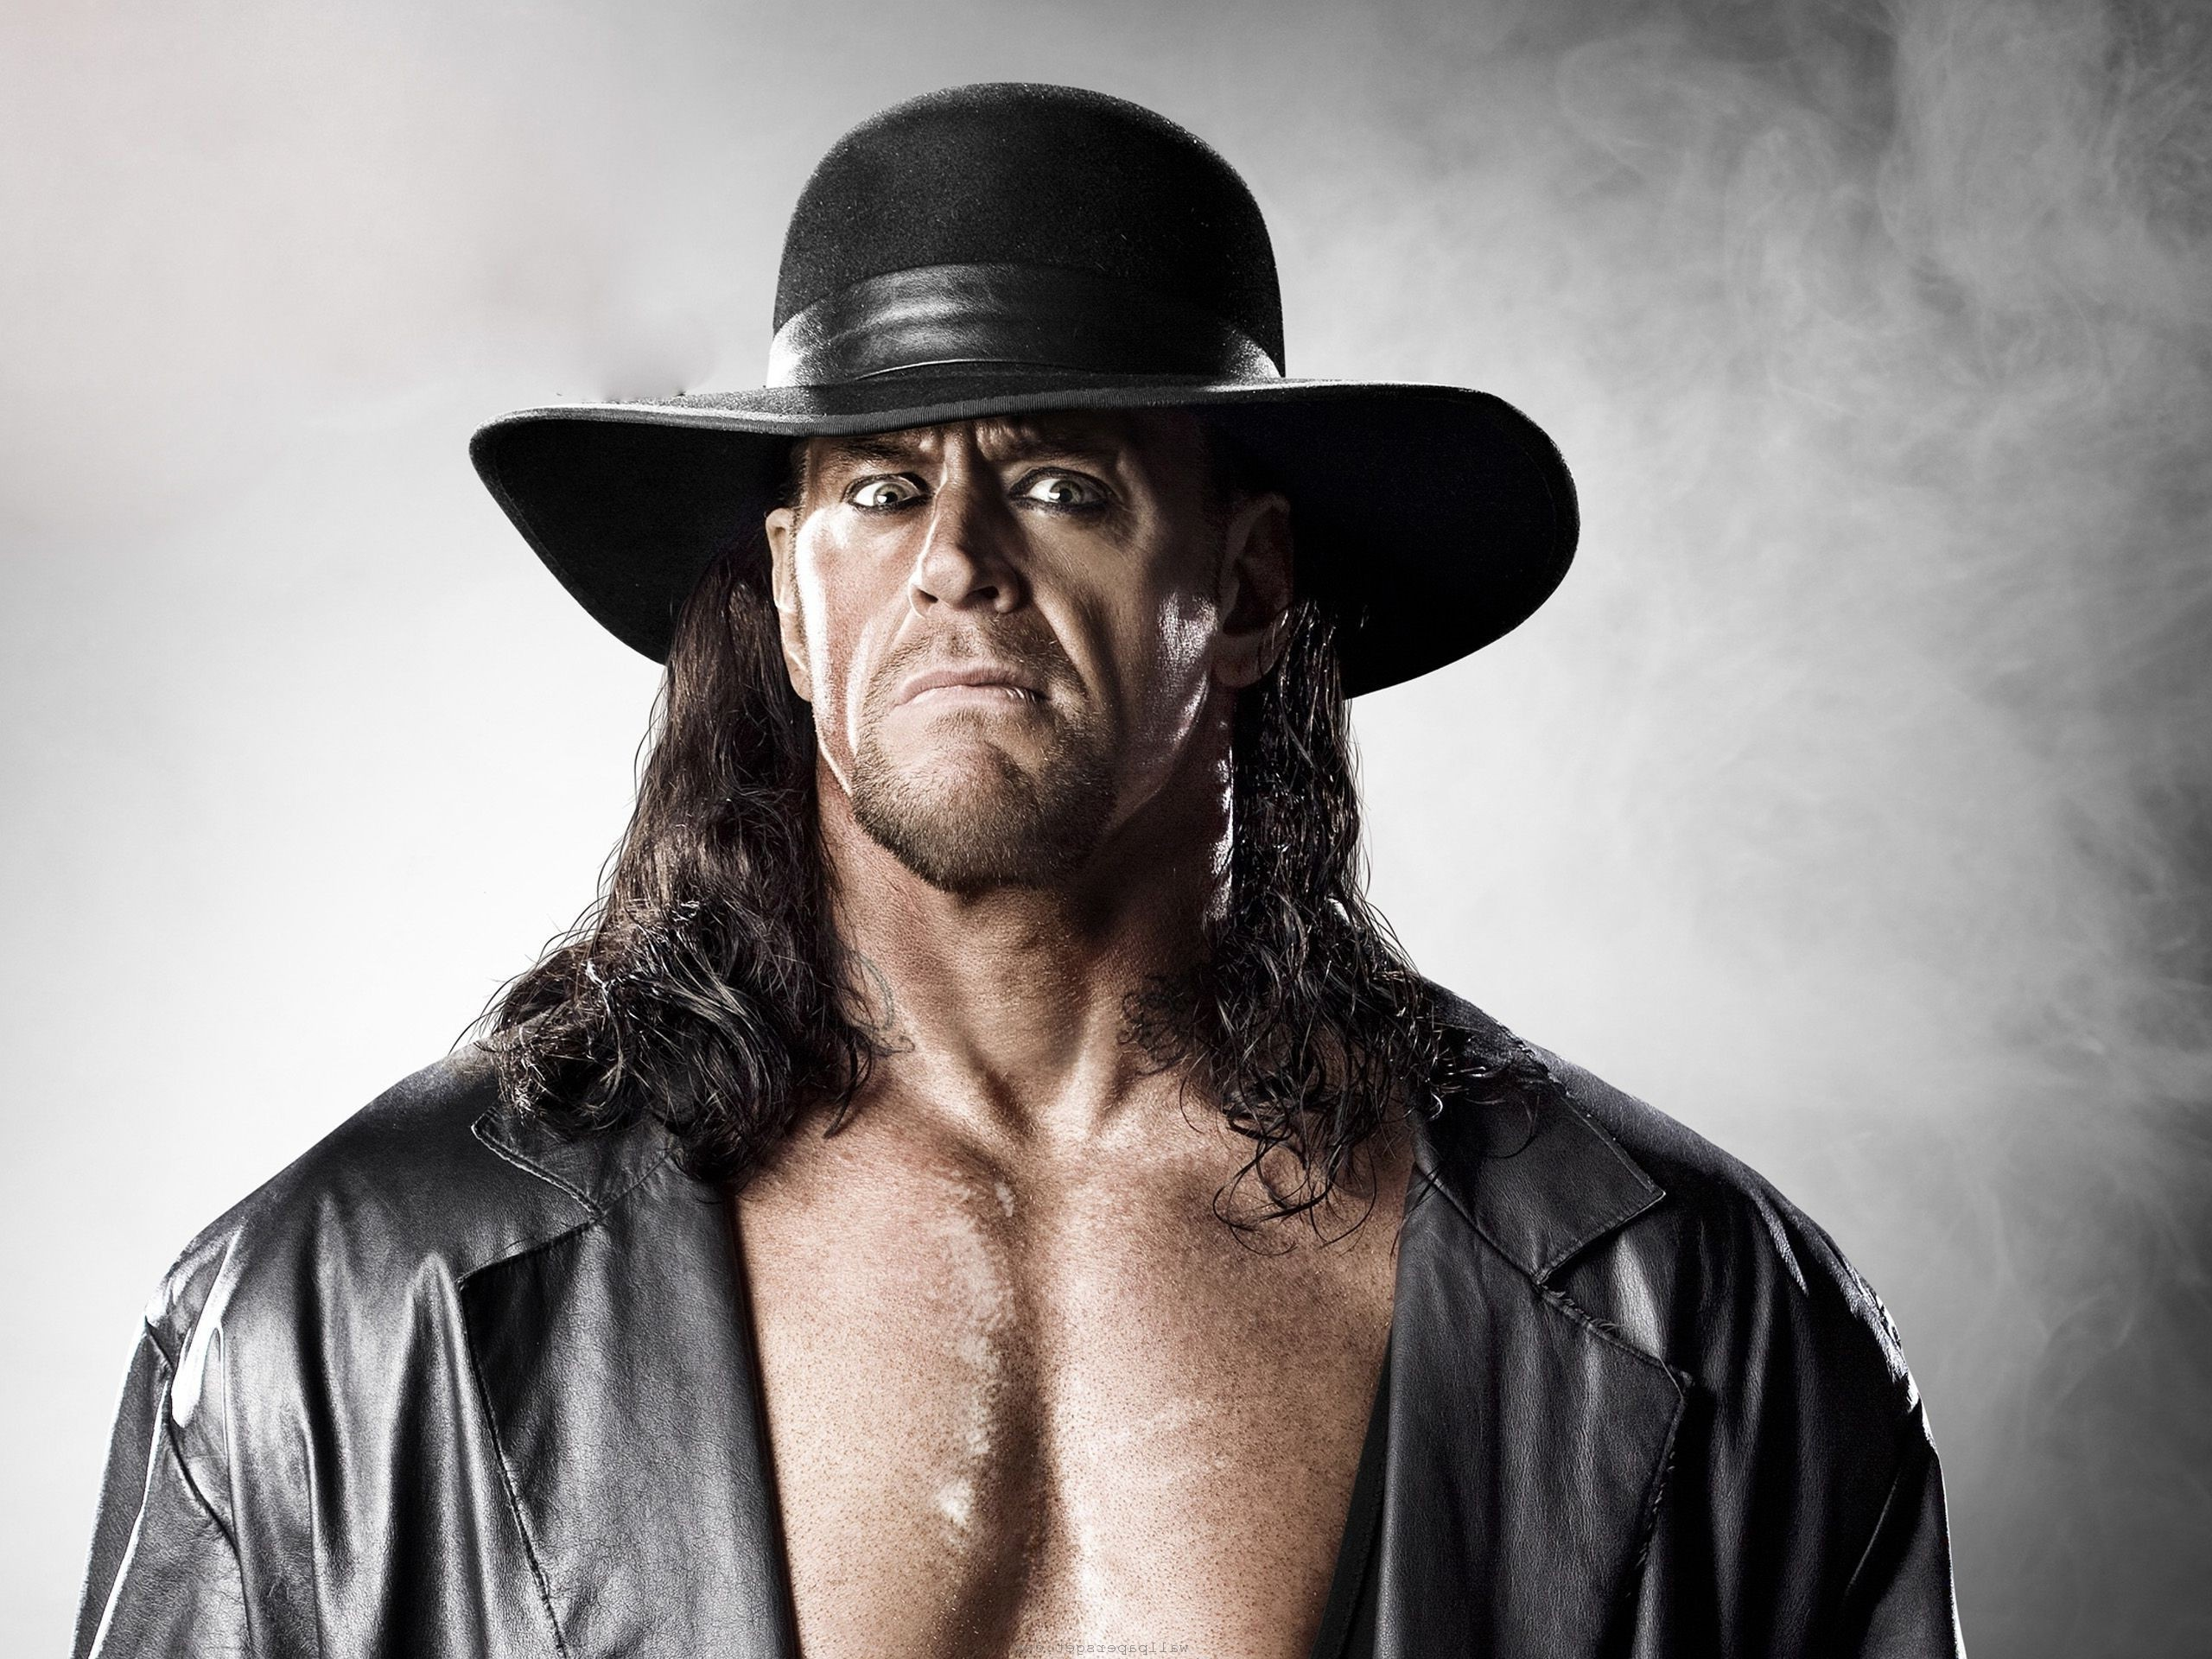 Check out Undertaker WWE Champion HD Photos And Undertaker HD Wallpapers in  widescreen resolution See WWE Superstar High Definition hd Images And The  …